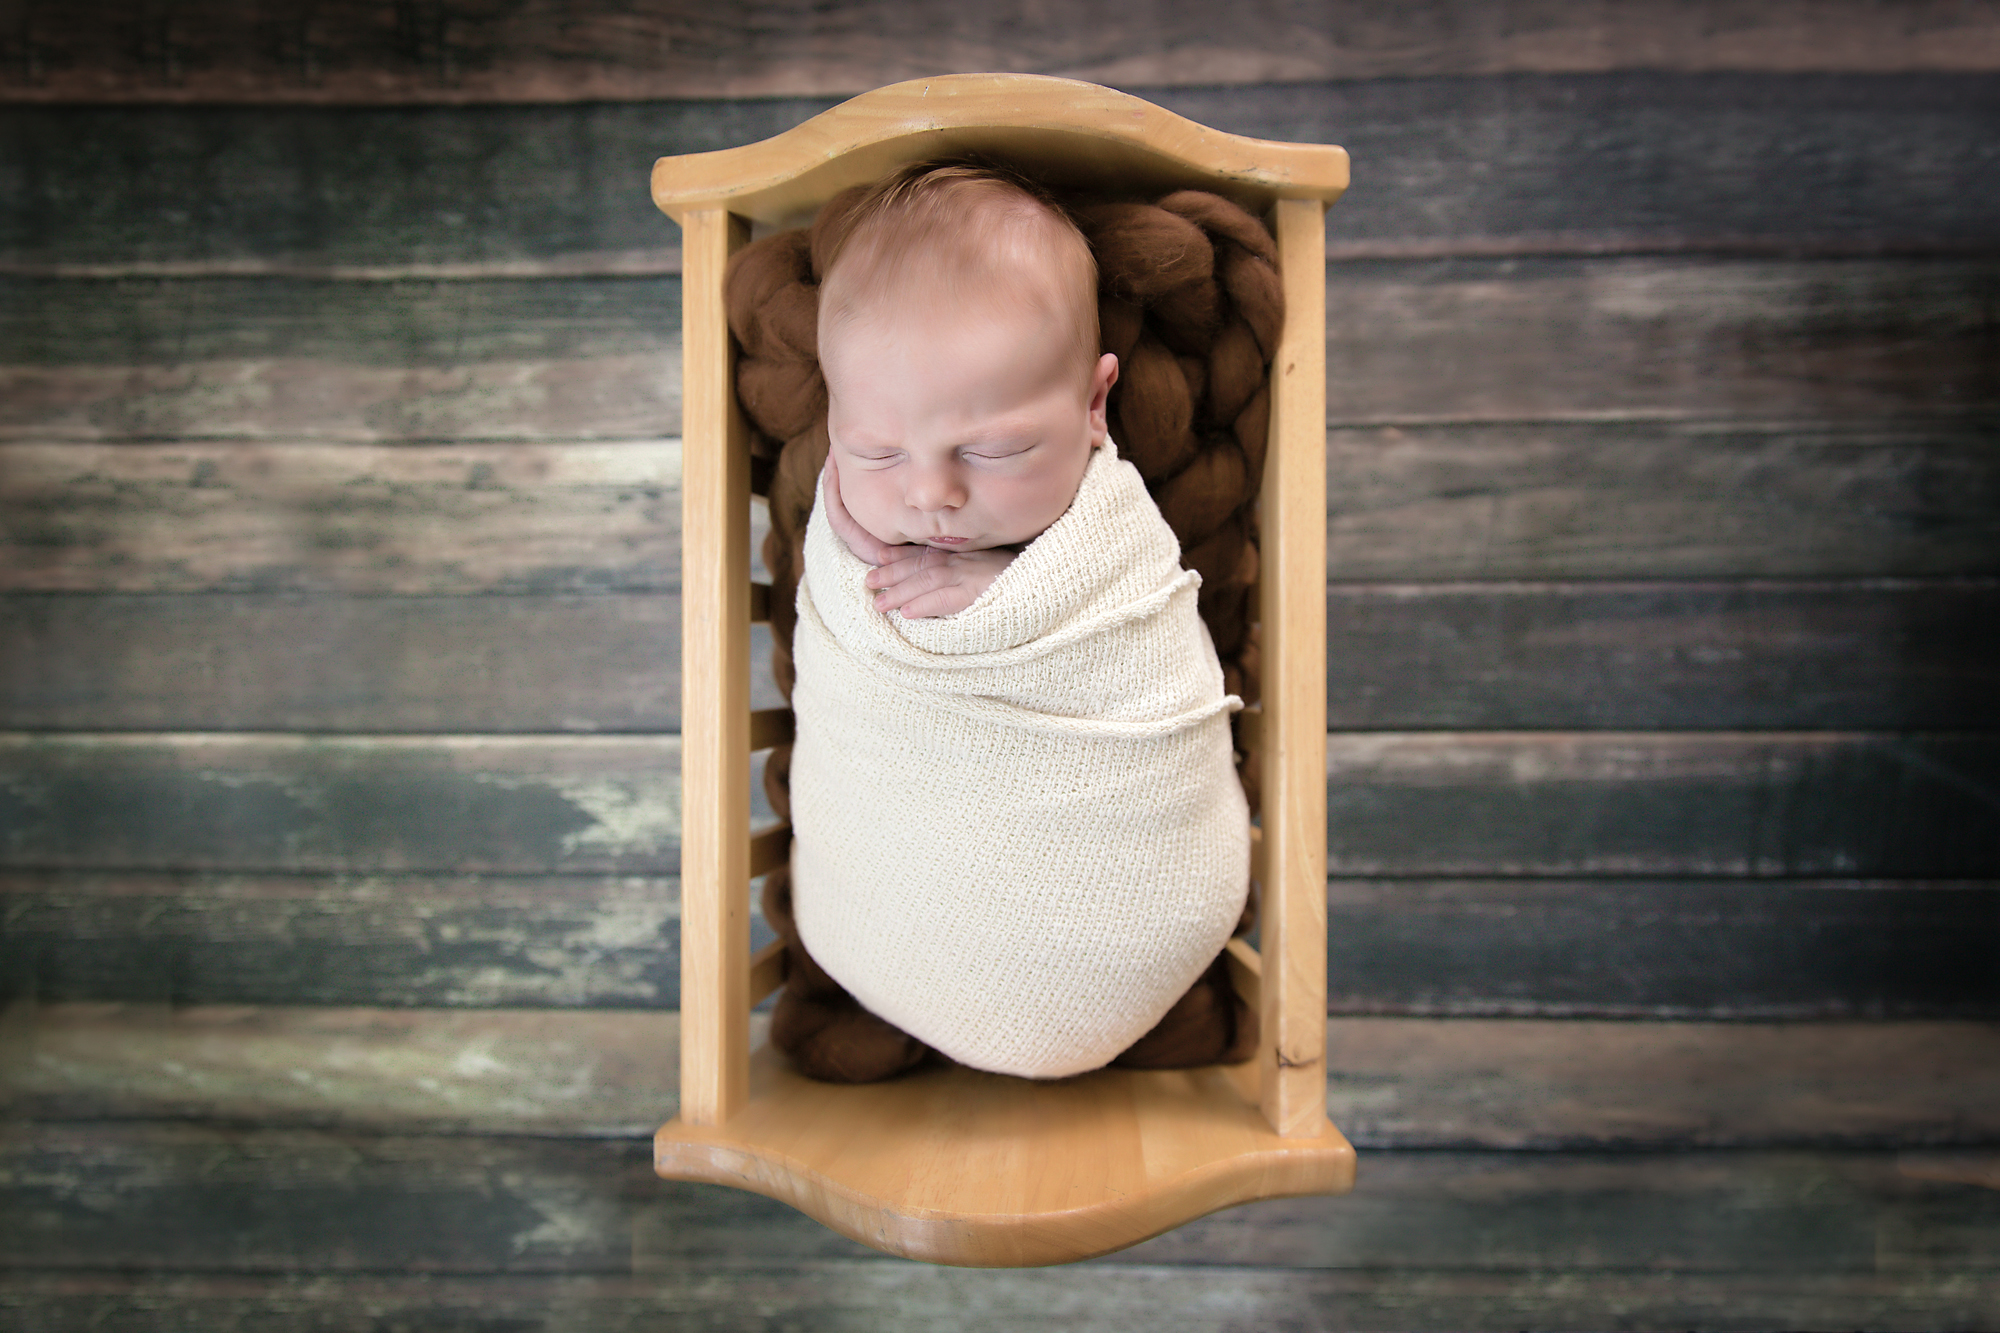 Newborn baby boy is sleeping soundly in a wooden crib. Newborn and Baby photoshoot ideas. Calgary and Airdrie, Alberta Newborn Photographer - Milashka Photography